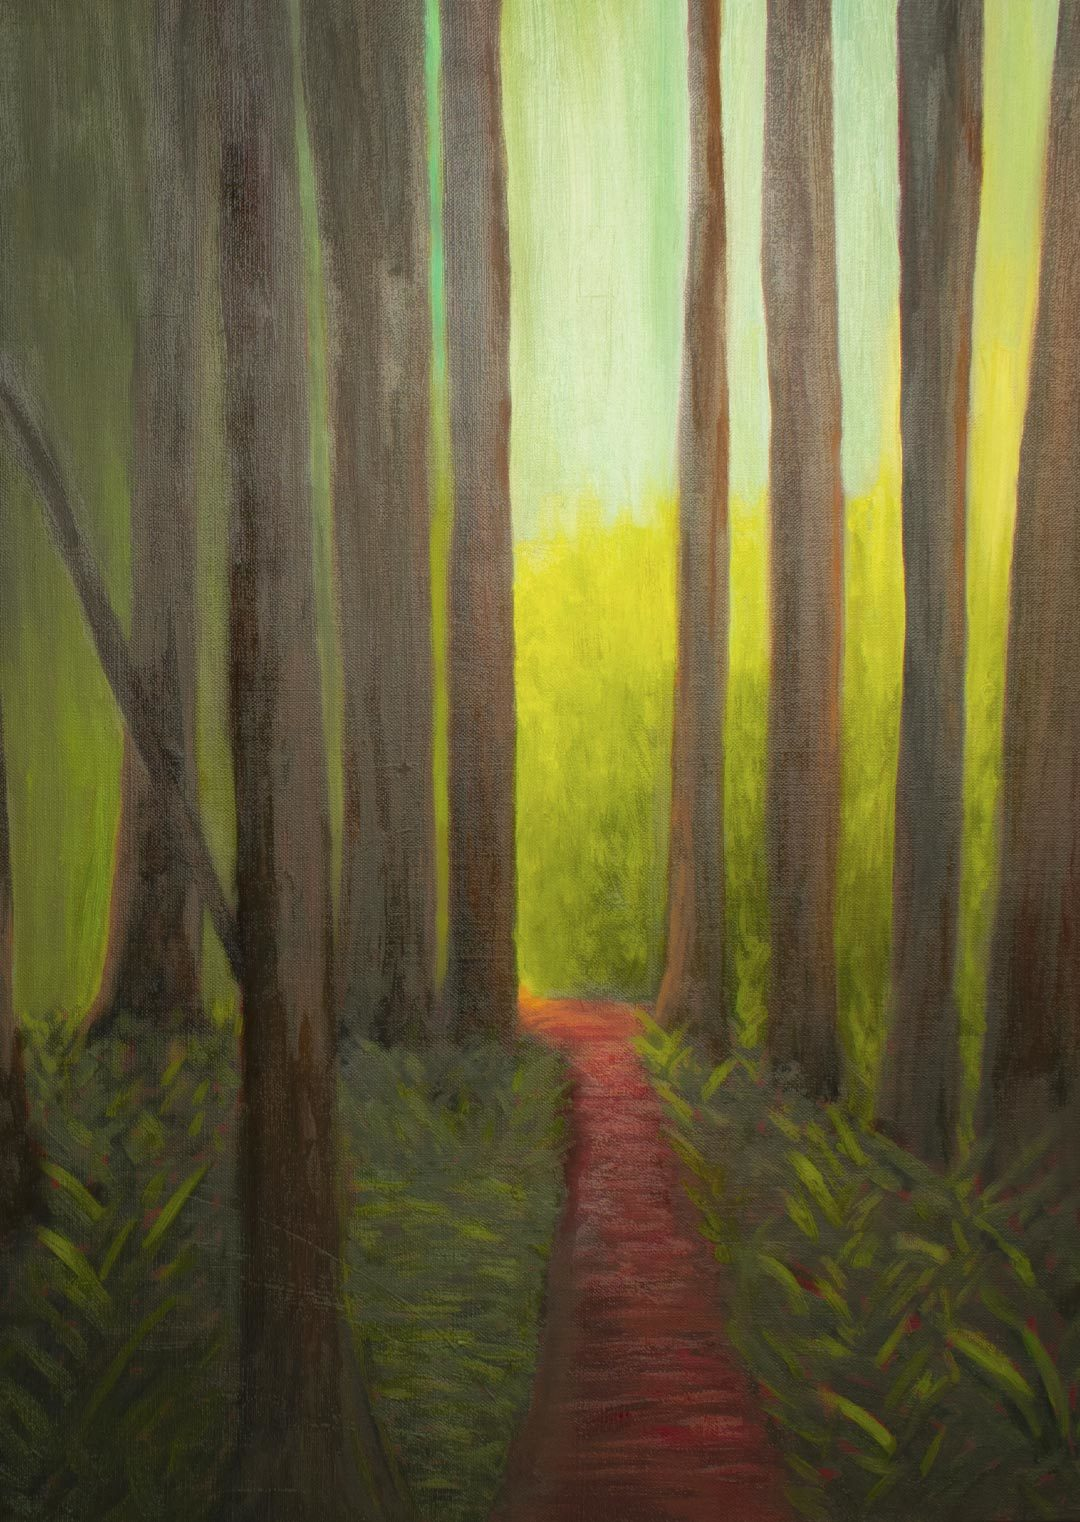 forest-oil-painting-rachelle-hynes-squamish-artist-forest-creativity-mindset-growth-fixed